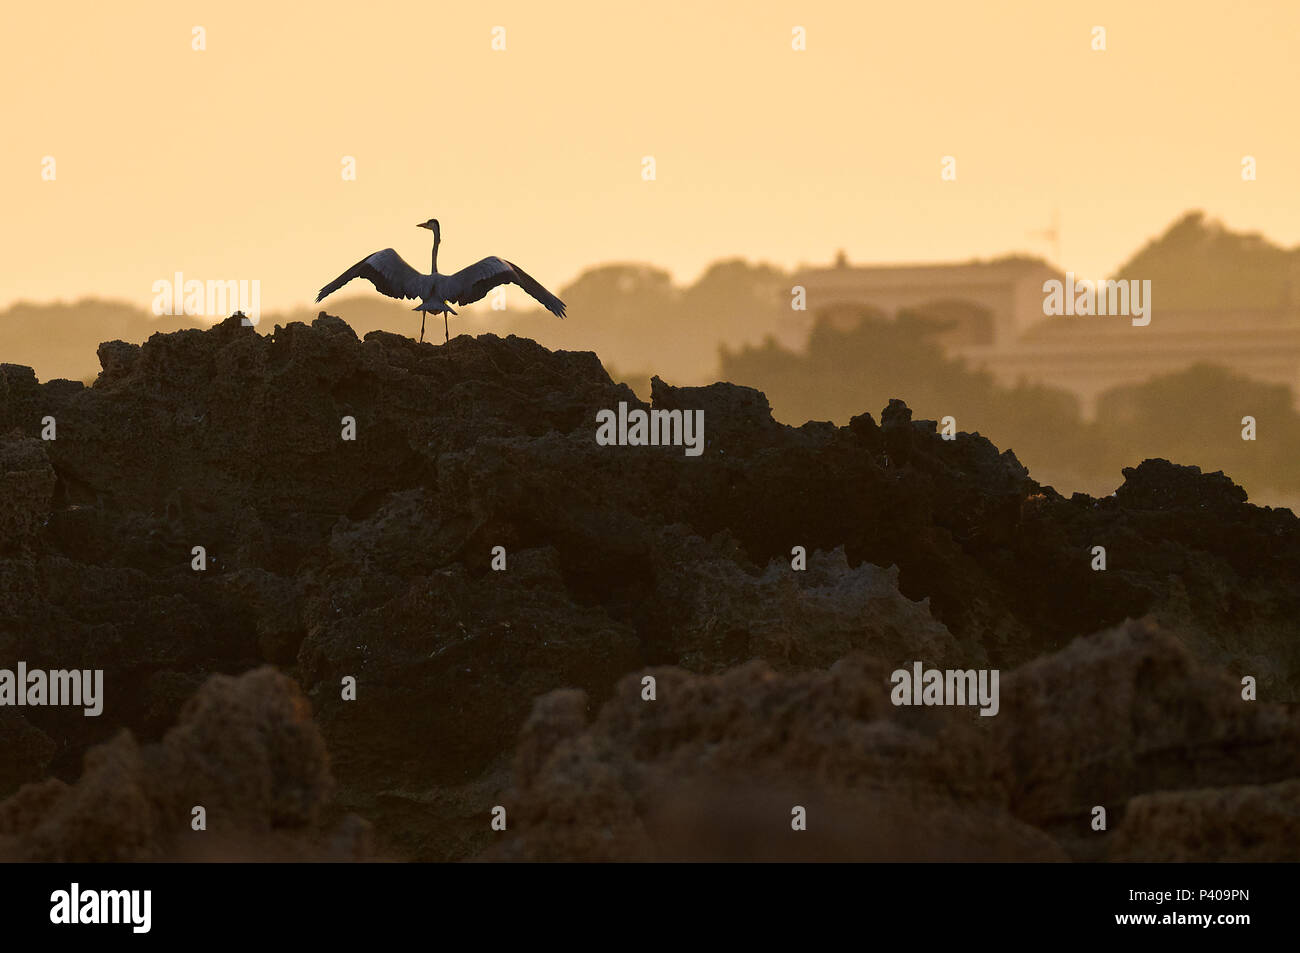 Grey heron (Area cinerea) with extended wings against golden sky at sunset in Ses Salines Natural Park seashore (Formentera, Balearic Islands, Spain) - Stock Image